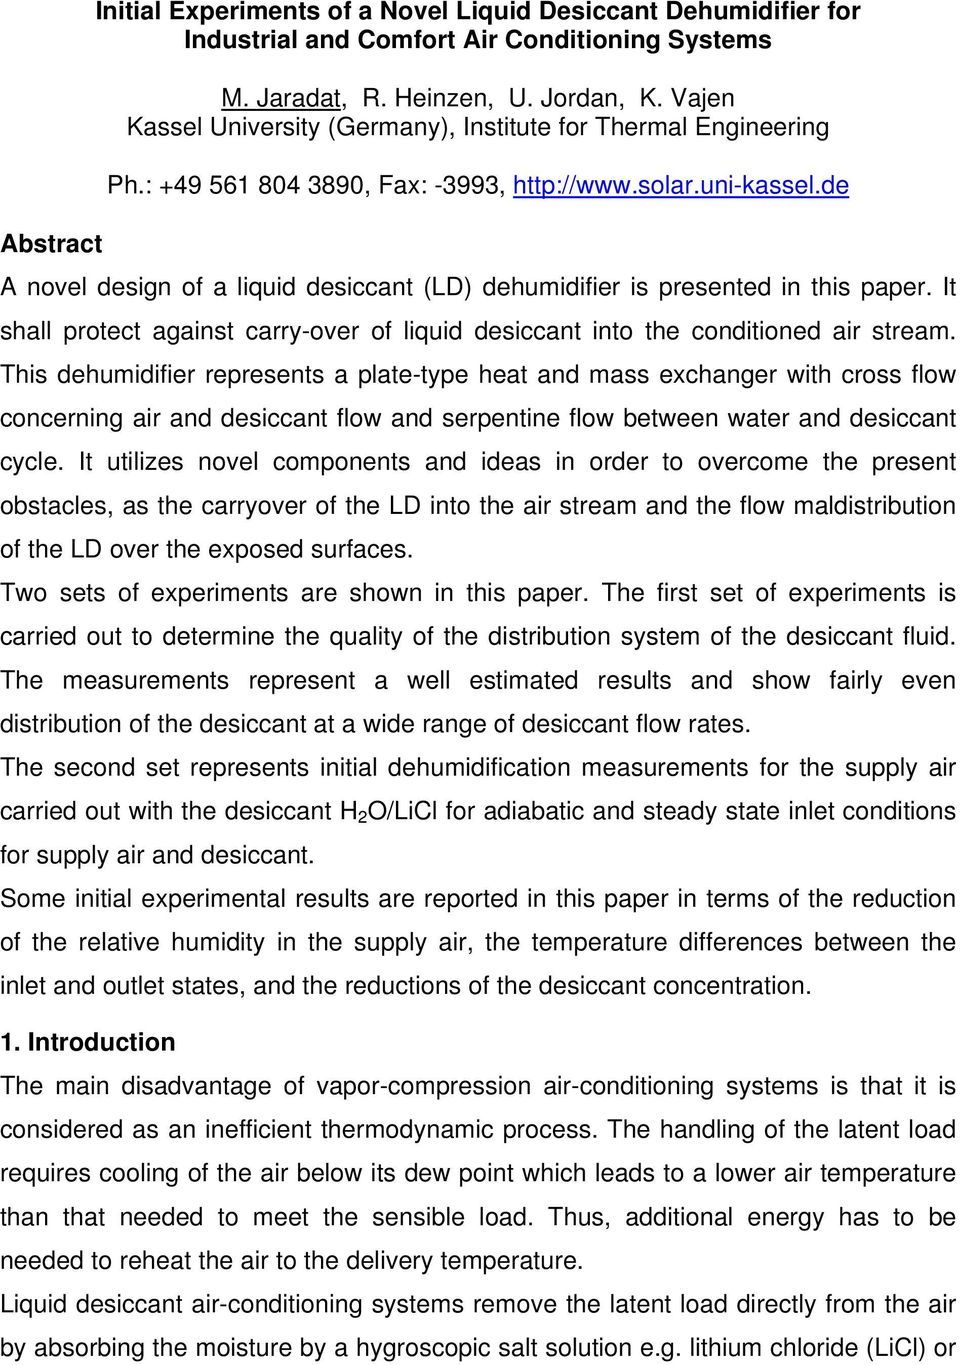 de A novel design of a liquid desiccant (LD) dehumidifier is presented in this paper. It shall protect against carry-over of liquid desiccant into the conditioned air stream.